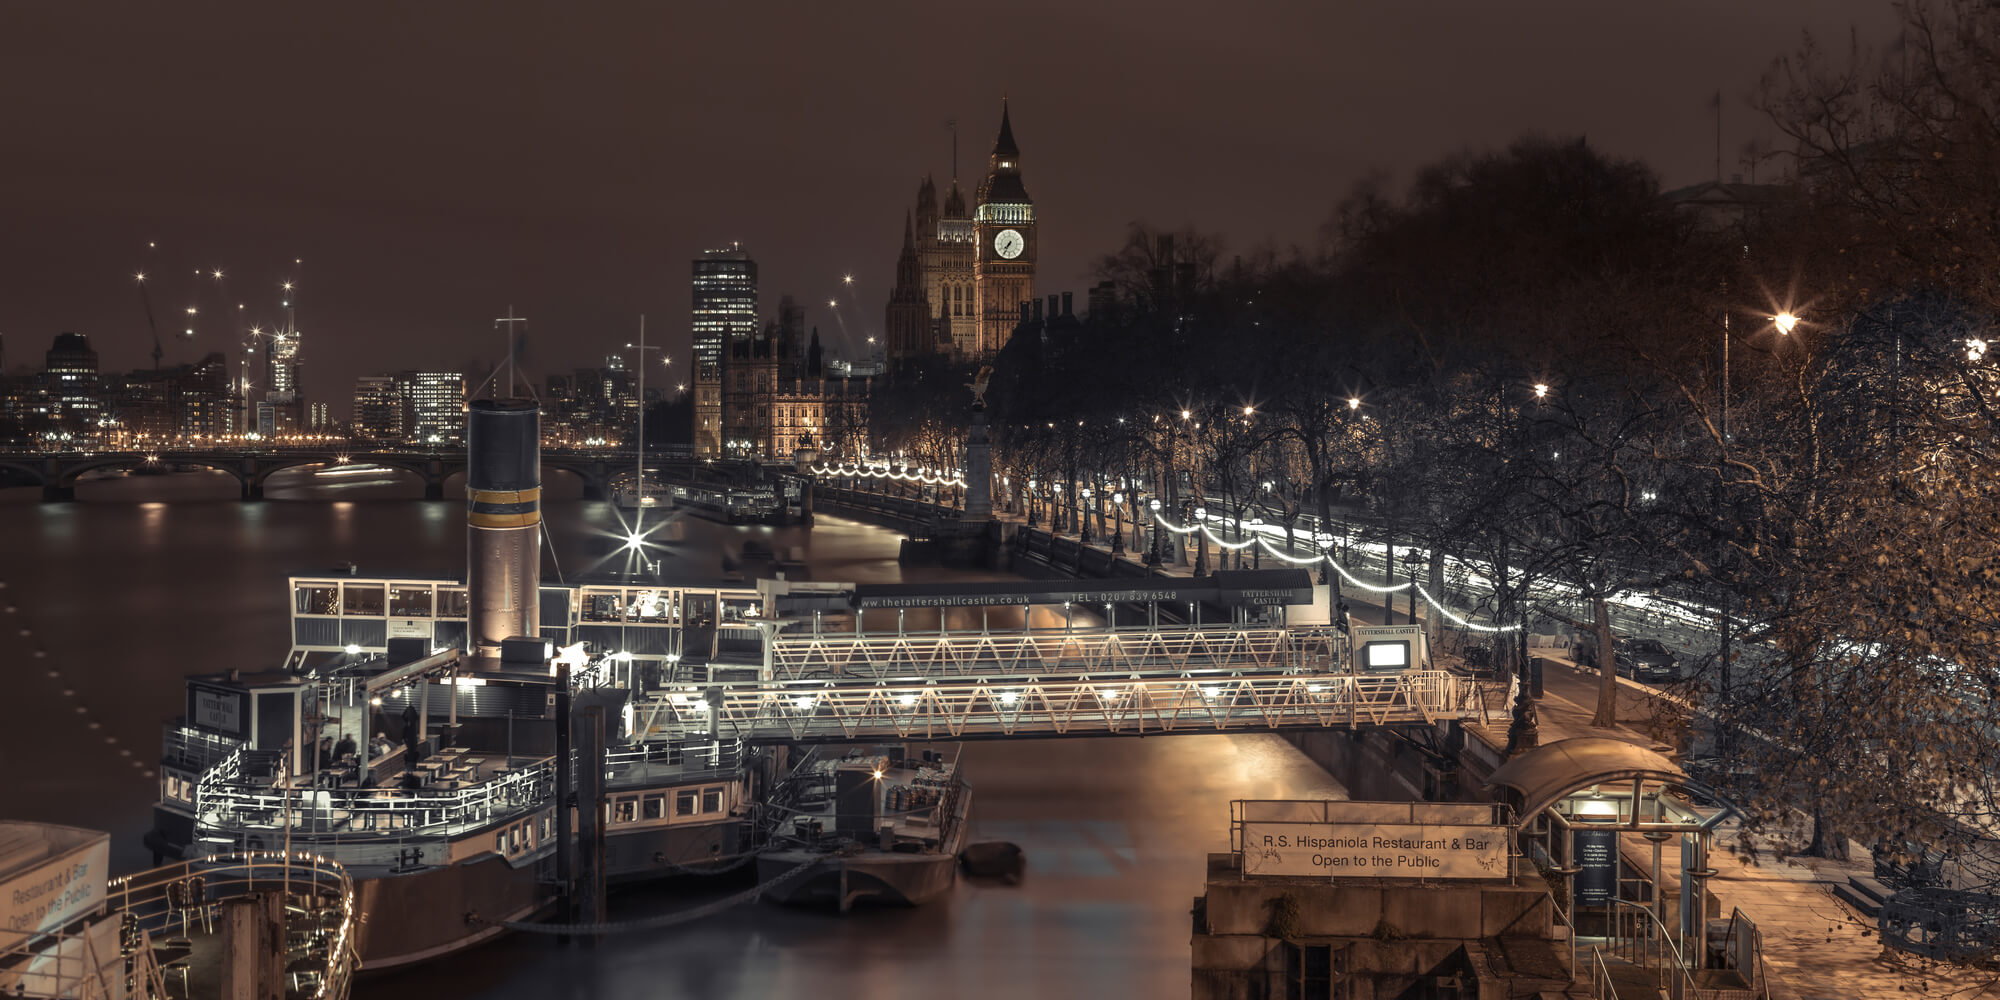 Evening View Of London City At Night Wallpaper Mural